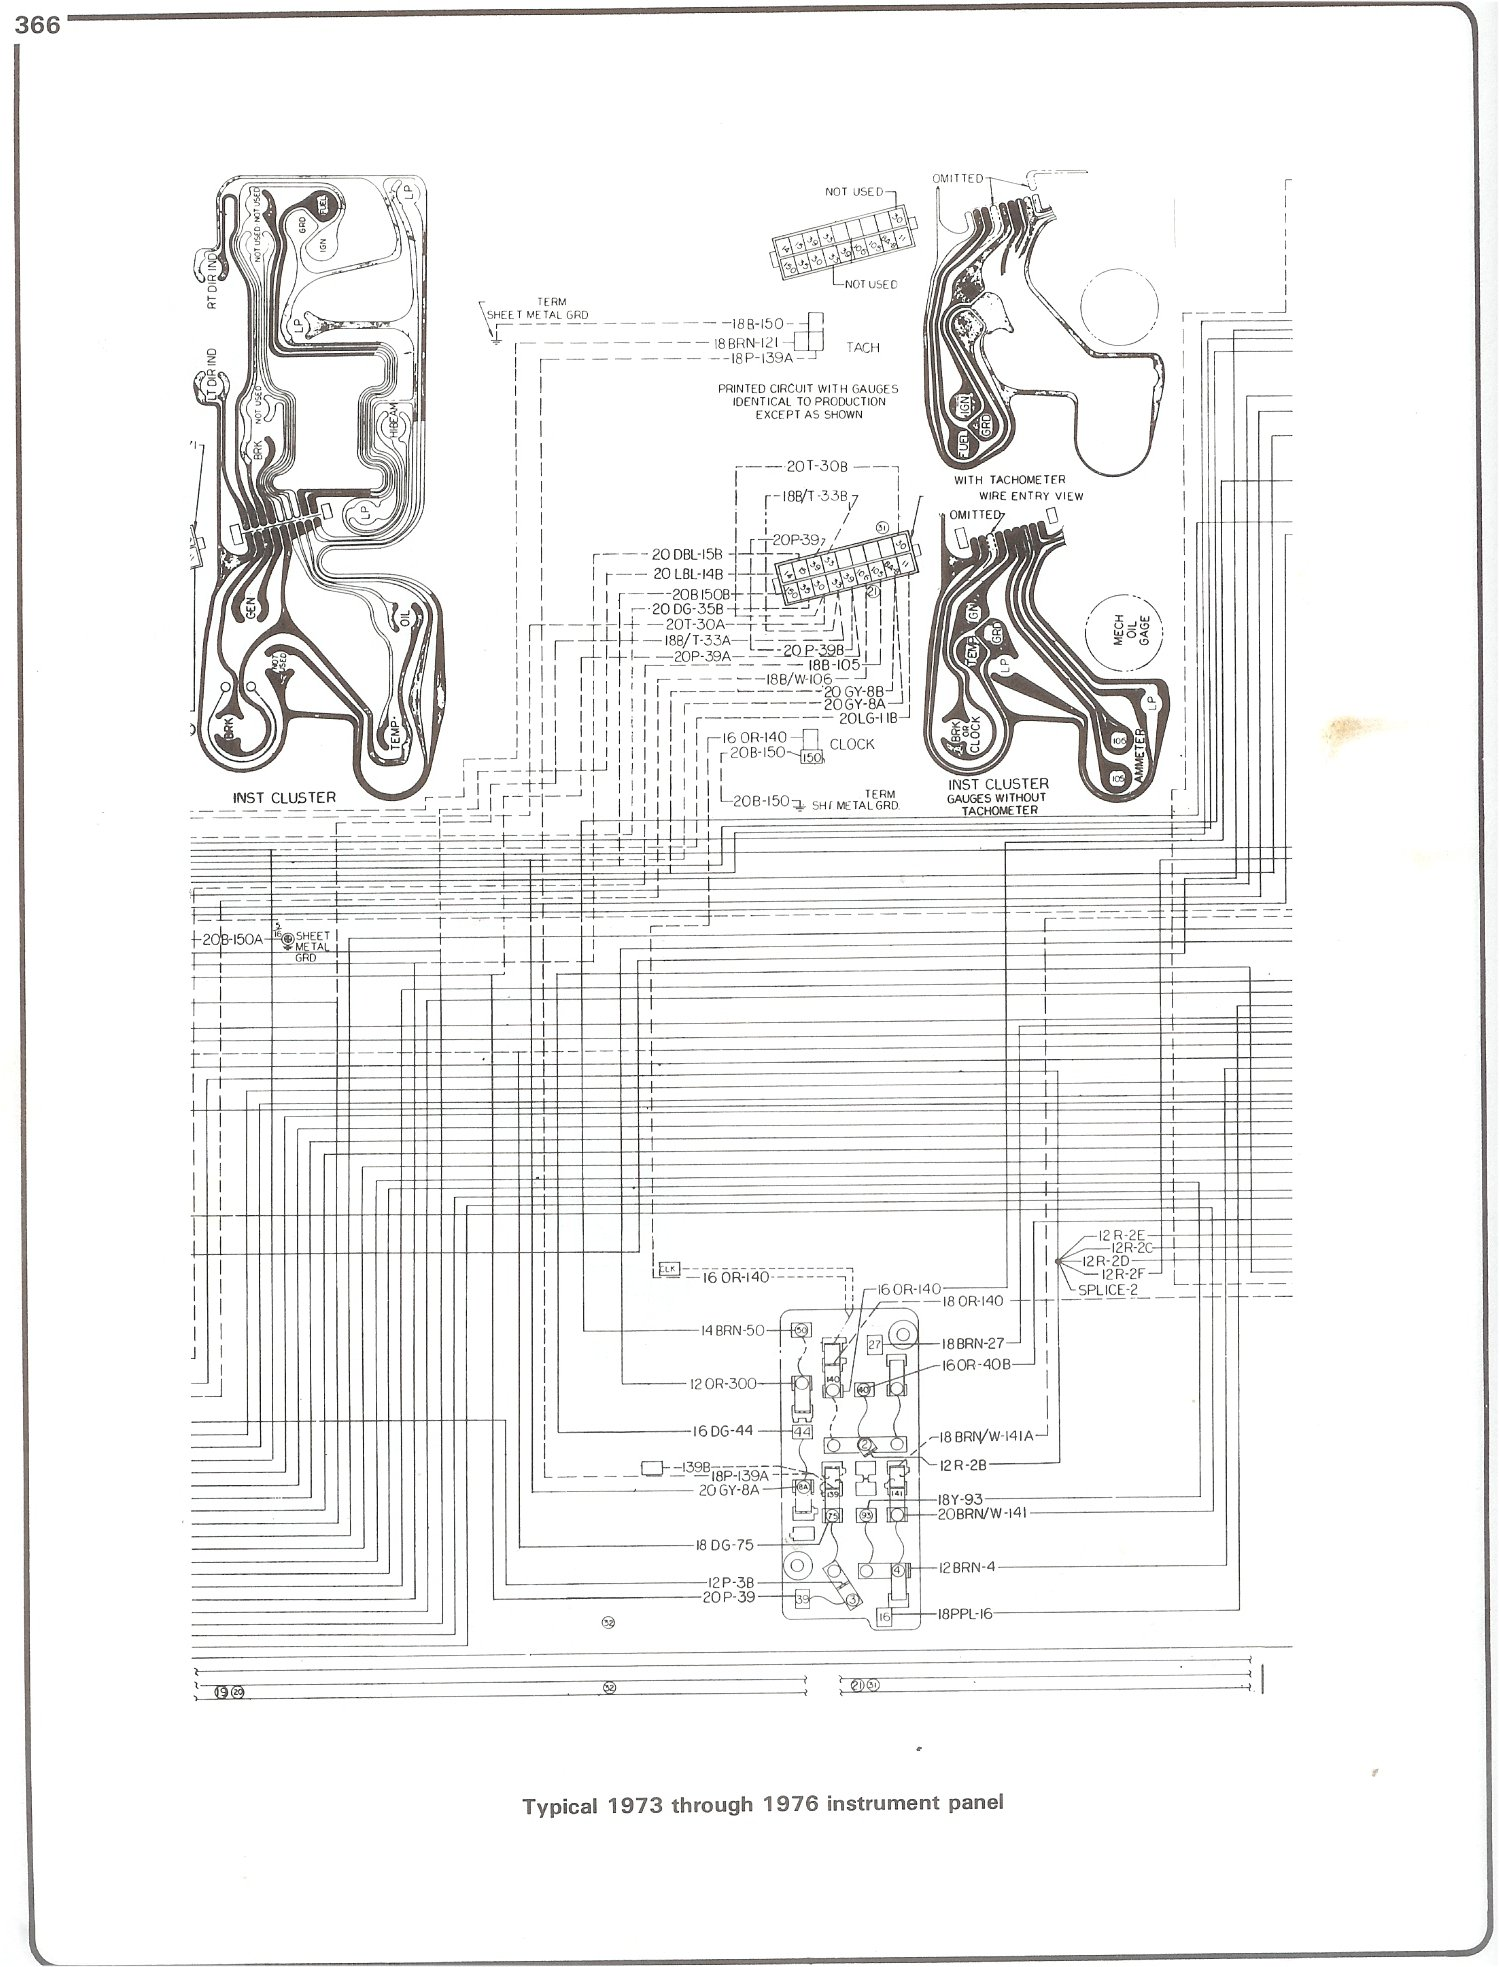 73 76_instrument electrical diagrams chevy only page 2 truck forum 1982 chevy truck wiring diagram at gsmx.co